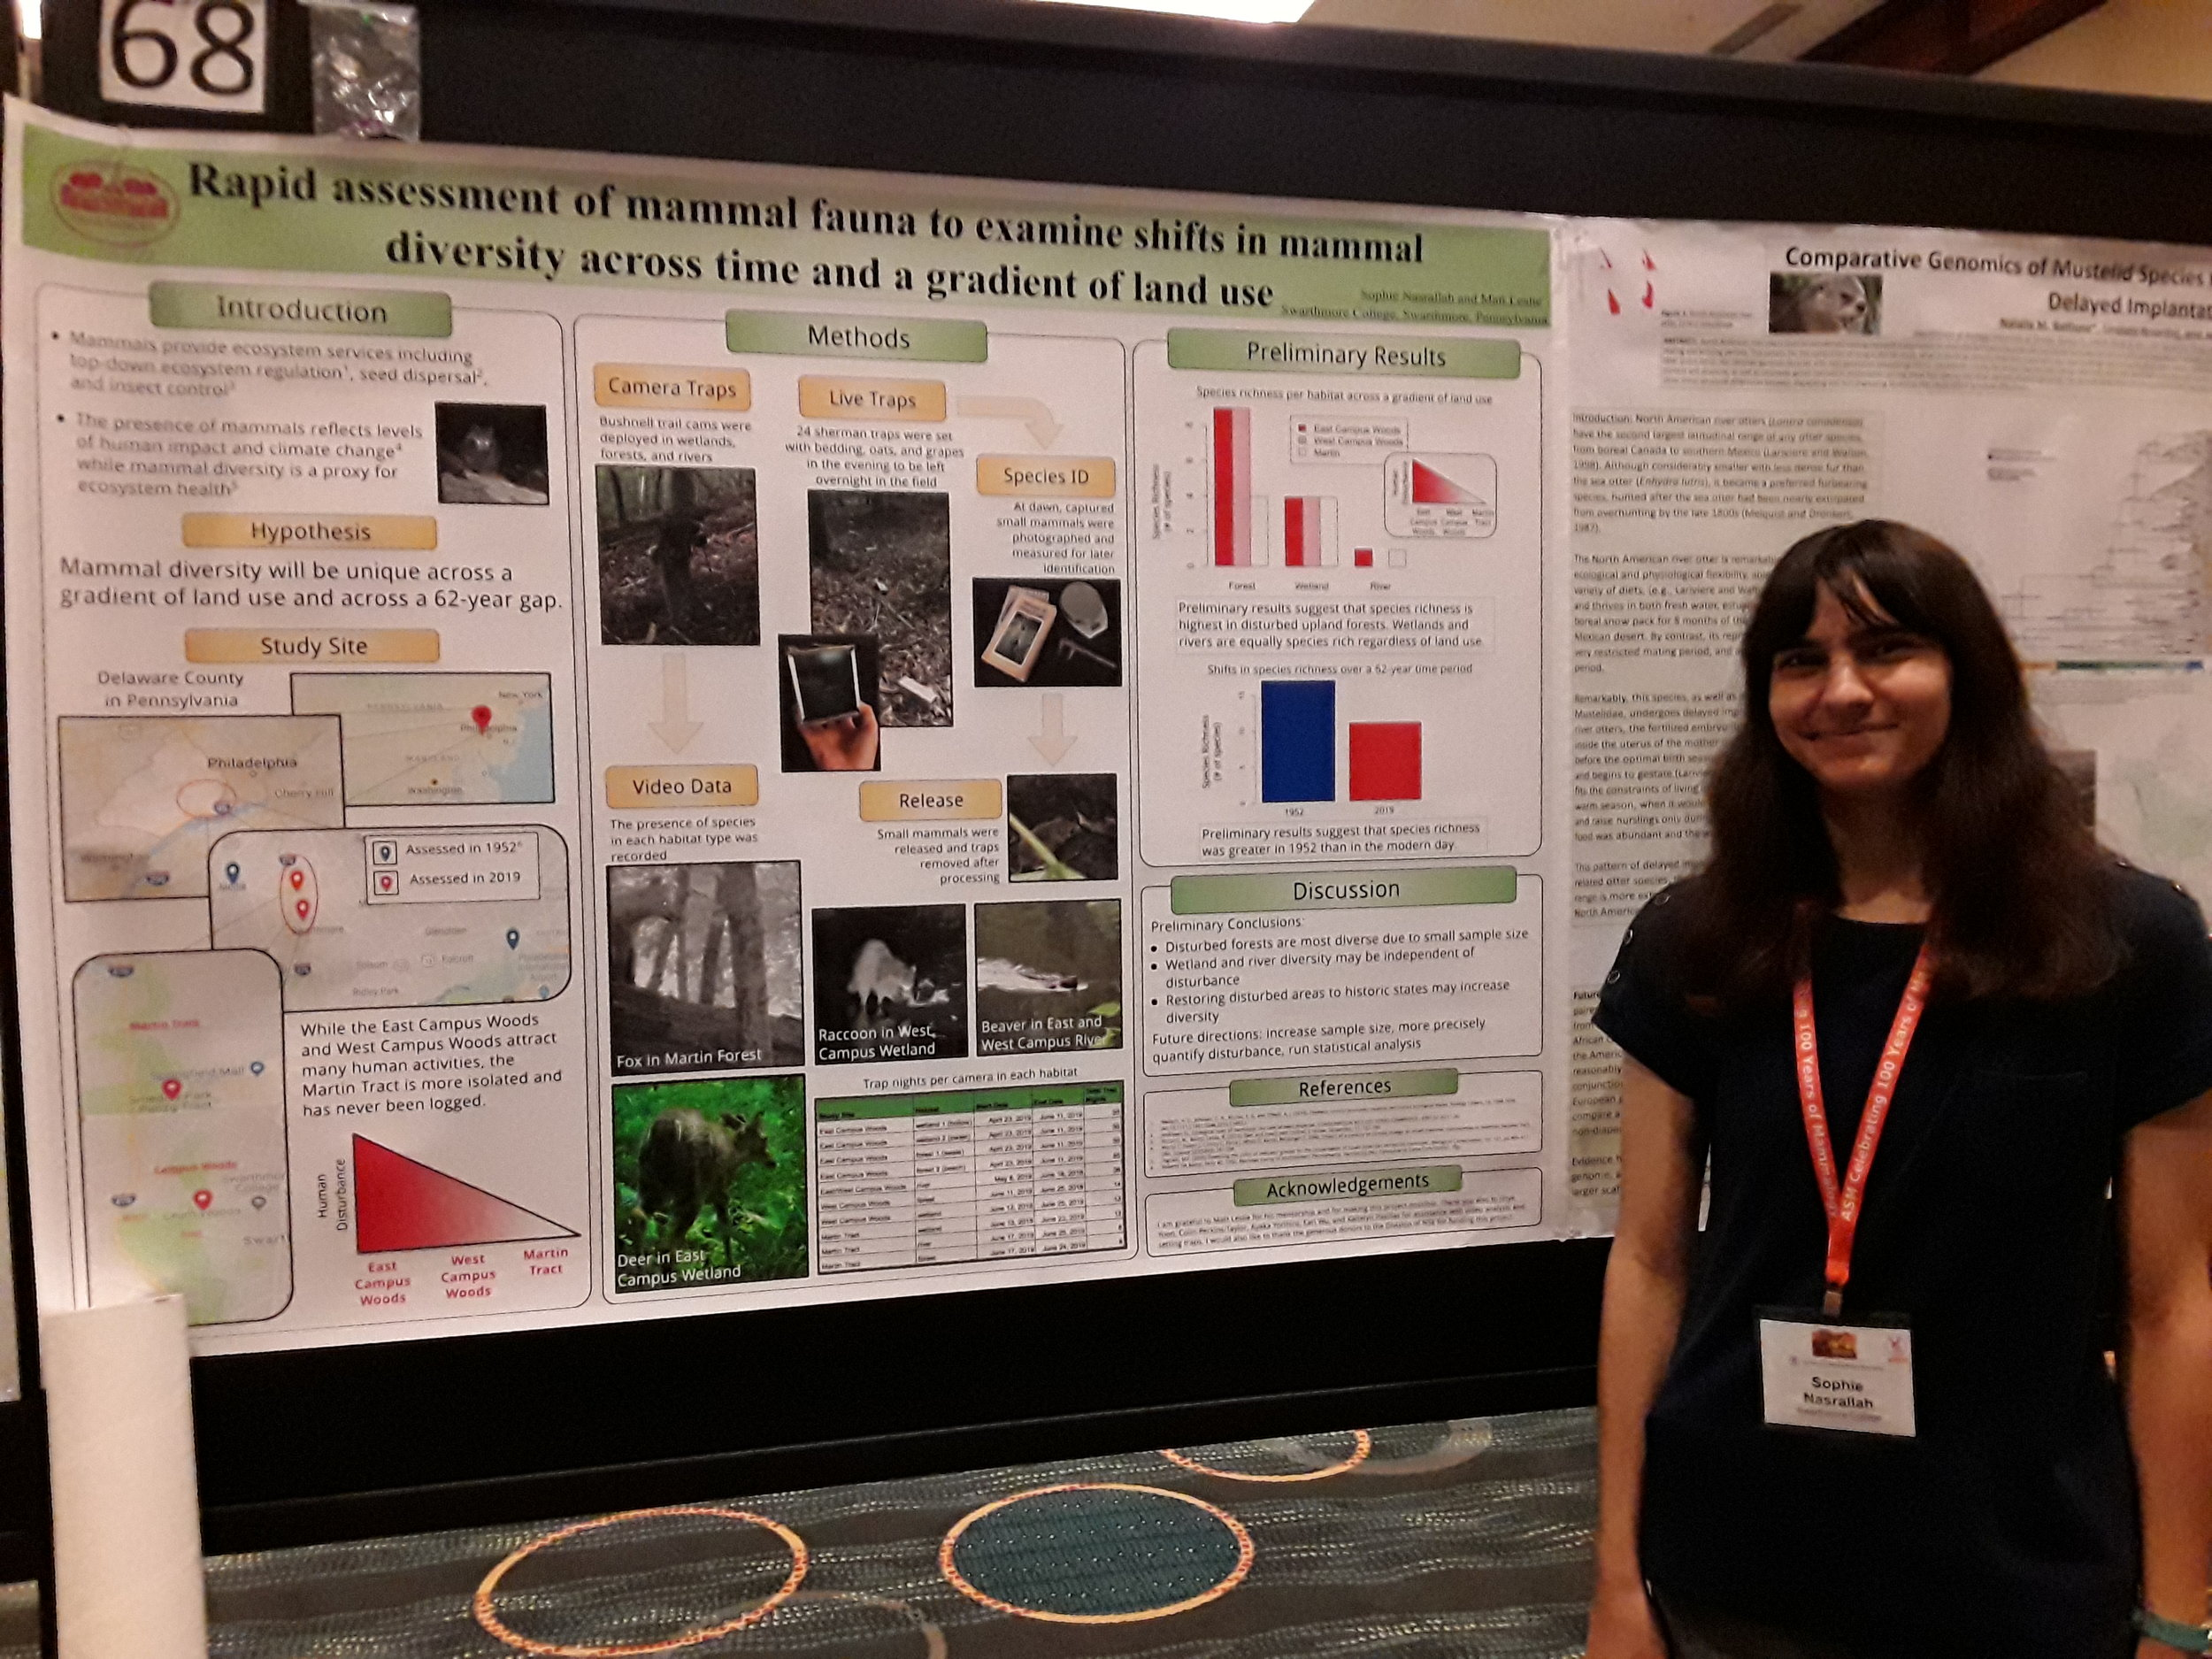 Sophie Nasrallah - Sophie presented our preliminary results examining the impacts of human land use on mammal fauna (both spatially and temporally) using camera trap data collected in the Crum Woods. Way to go Sophie!